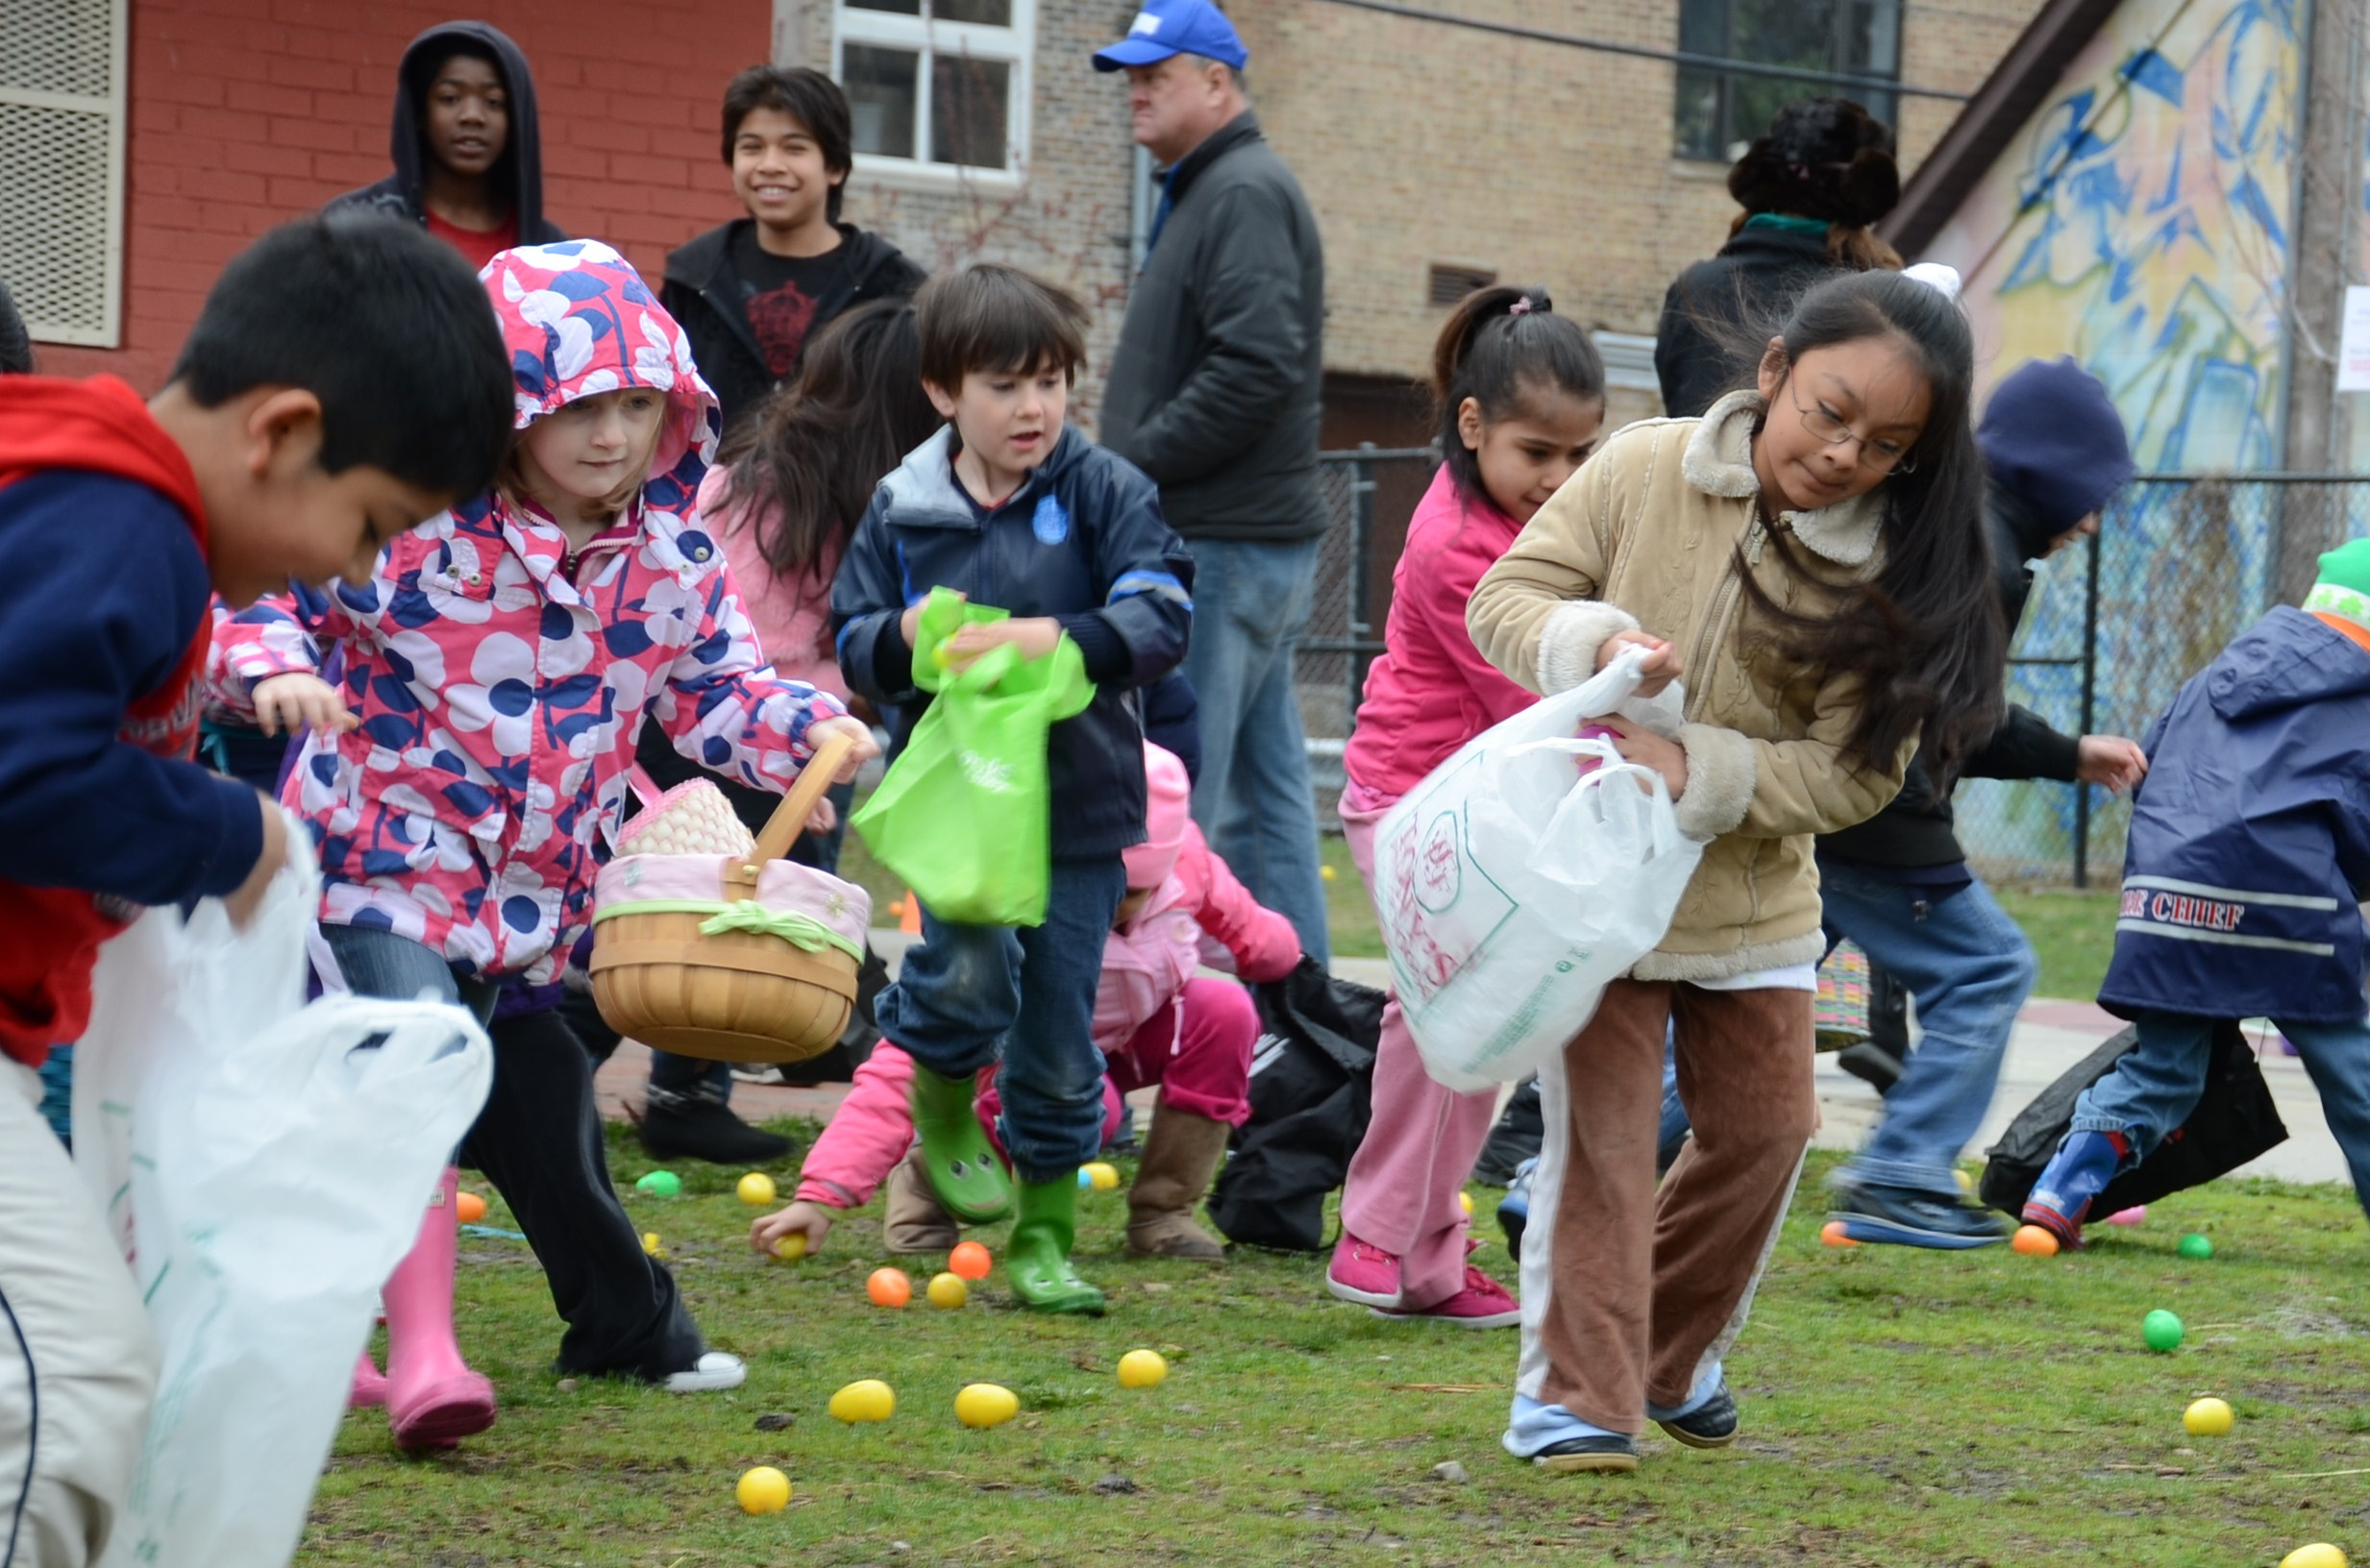 IMAGE: Egg Hunt